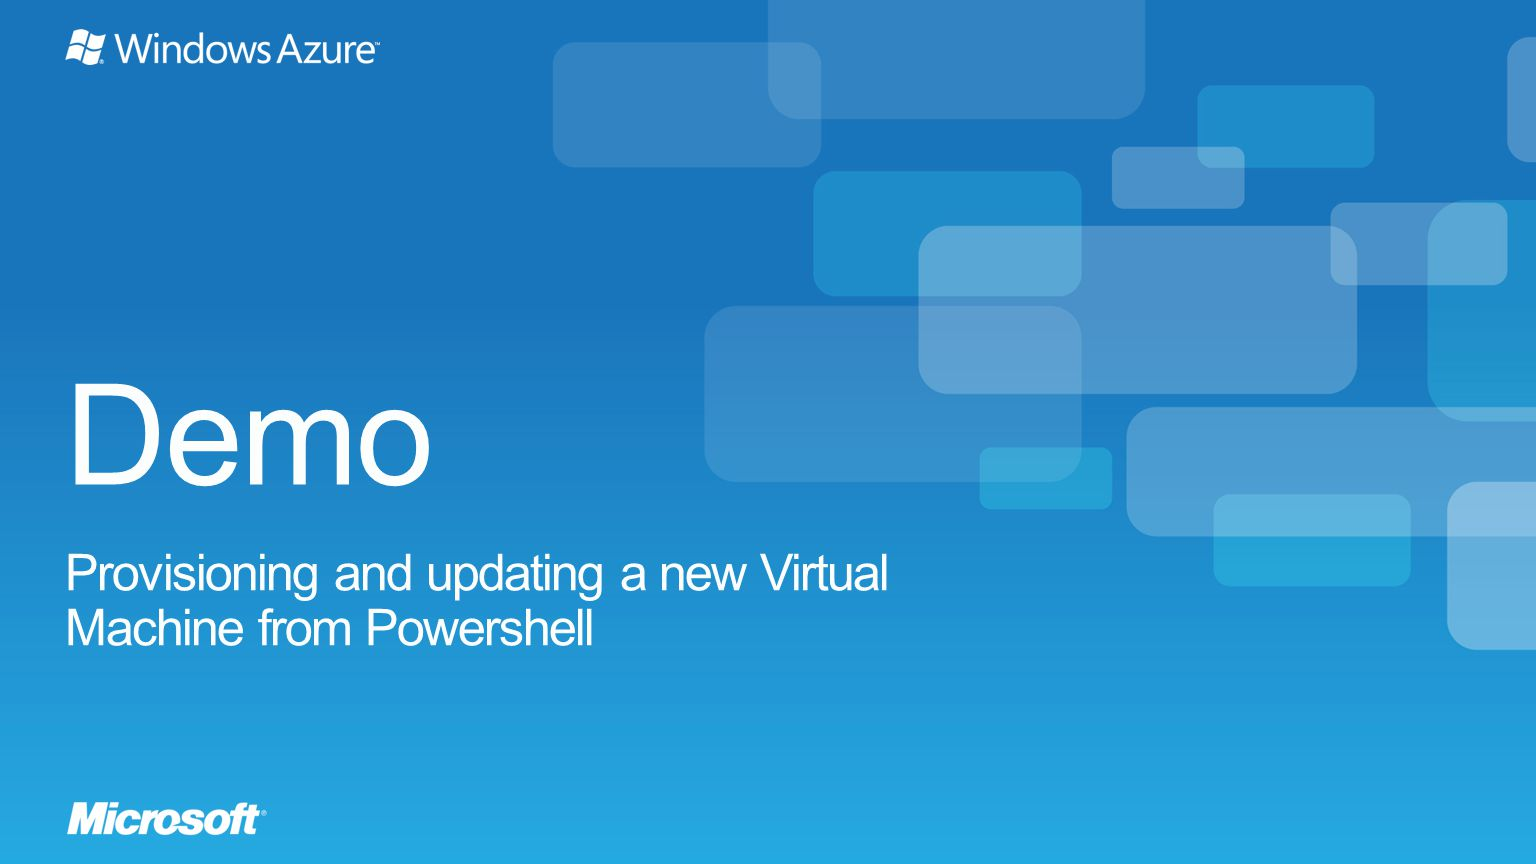 Demo Provisioning and updating a new Virtual Machine from Powershell